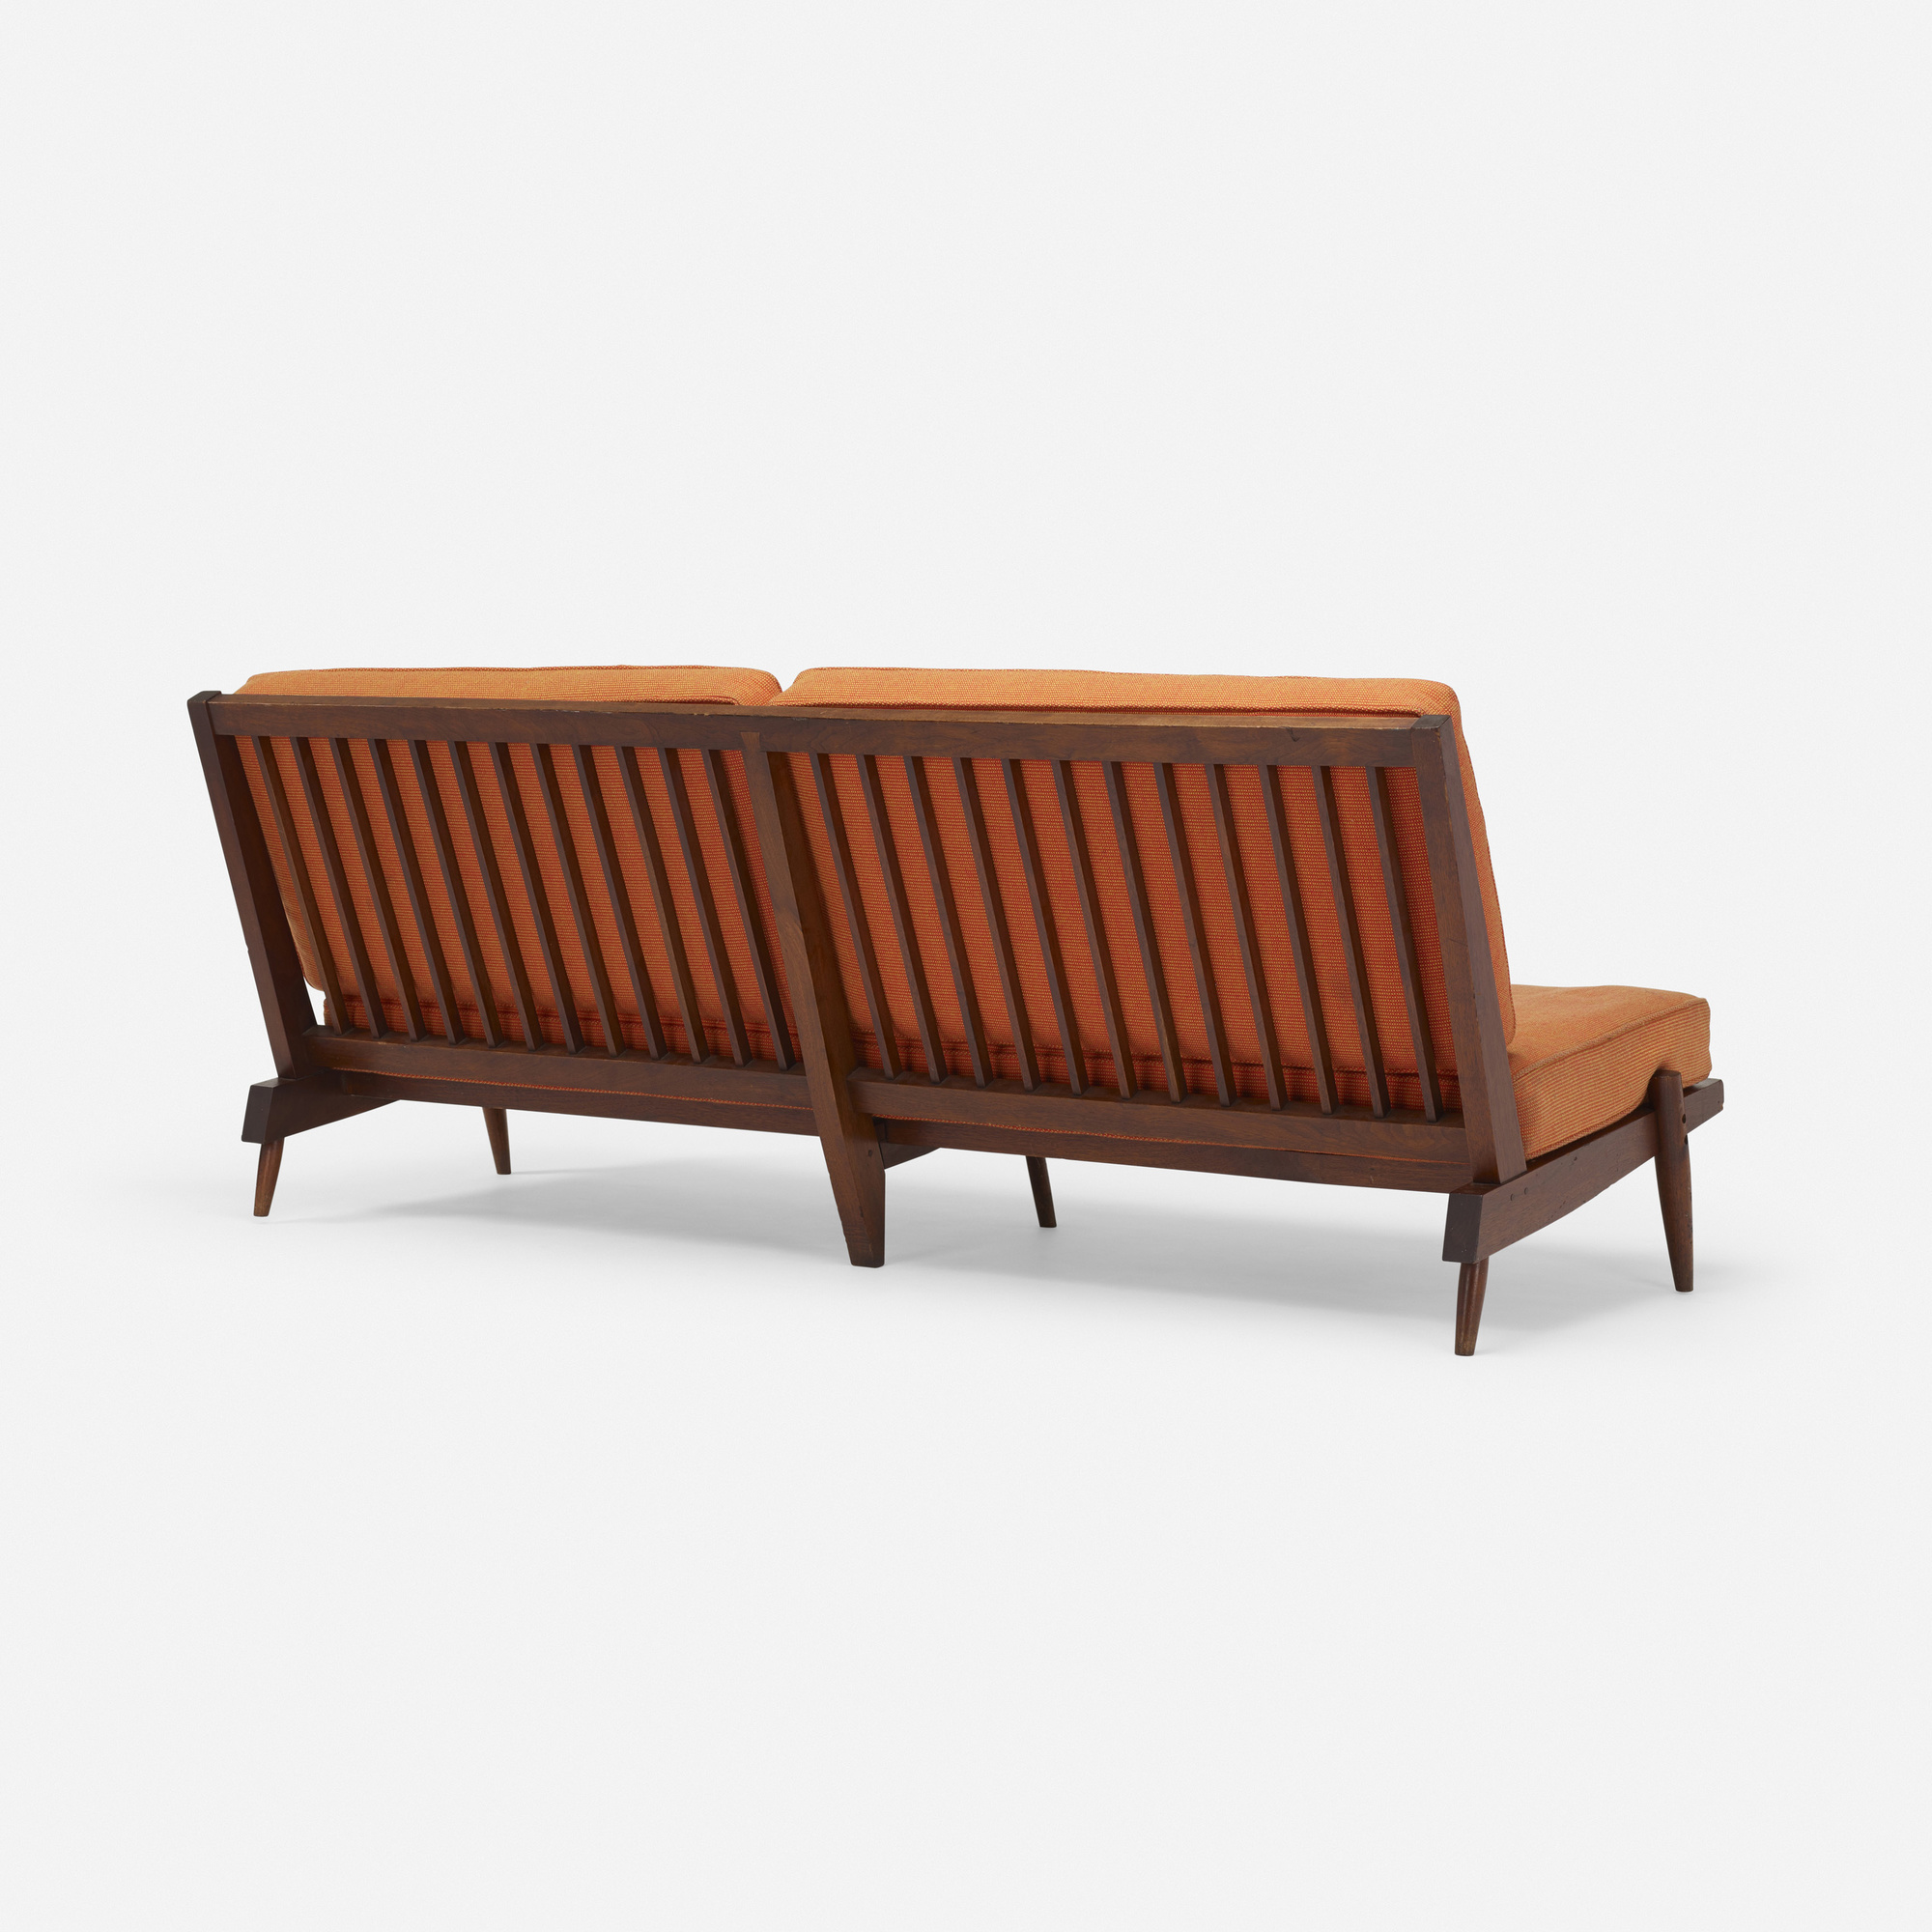 627: In the manner of George Nakashima / sofa (1 of 3)